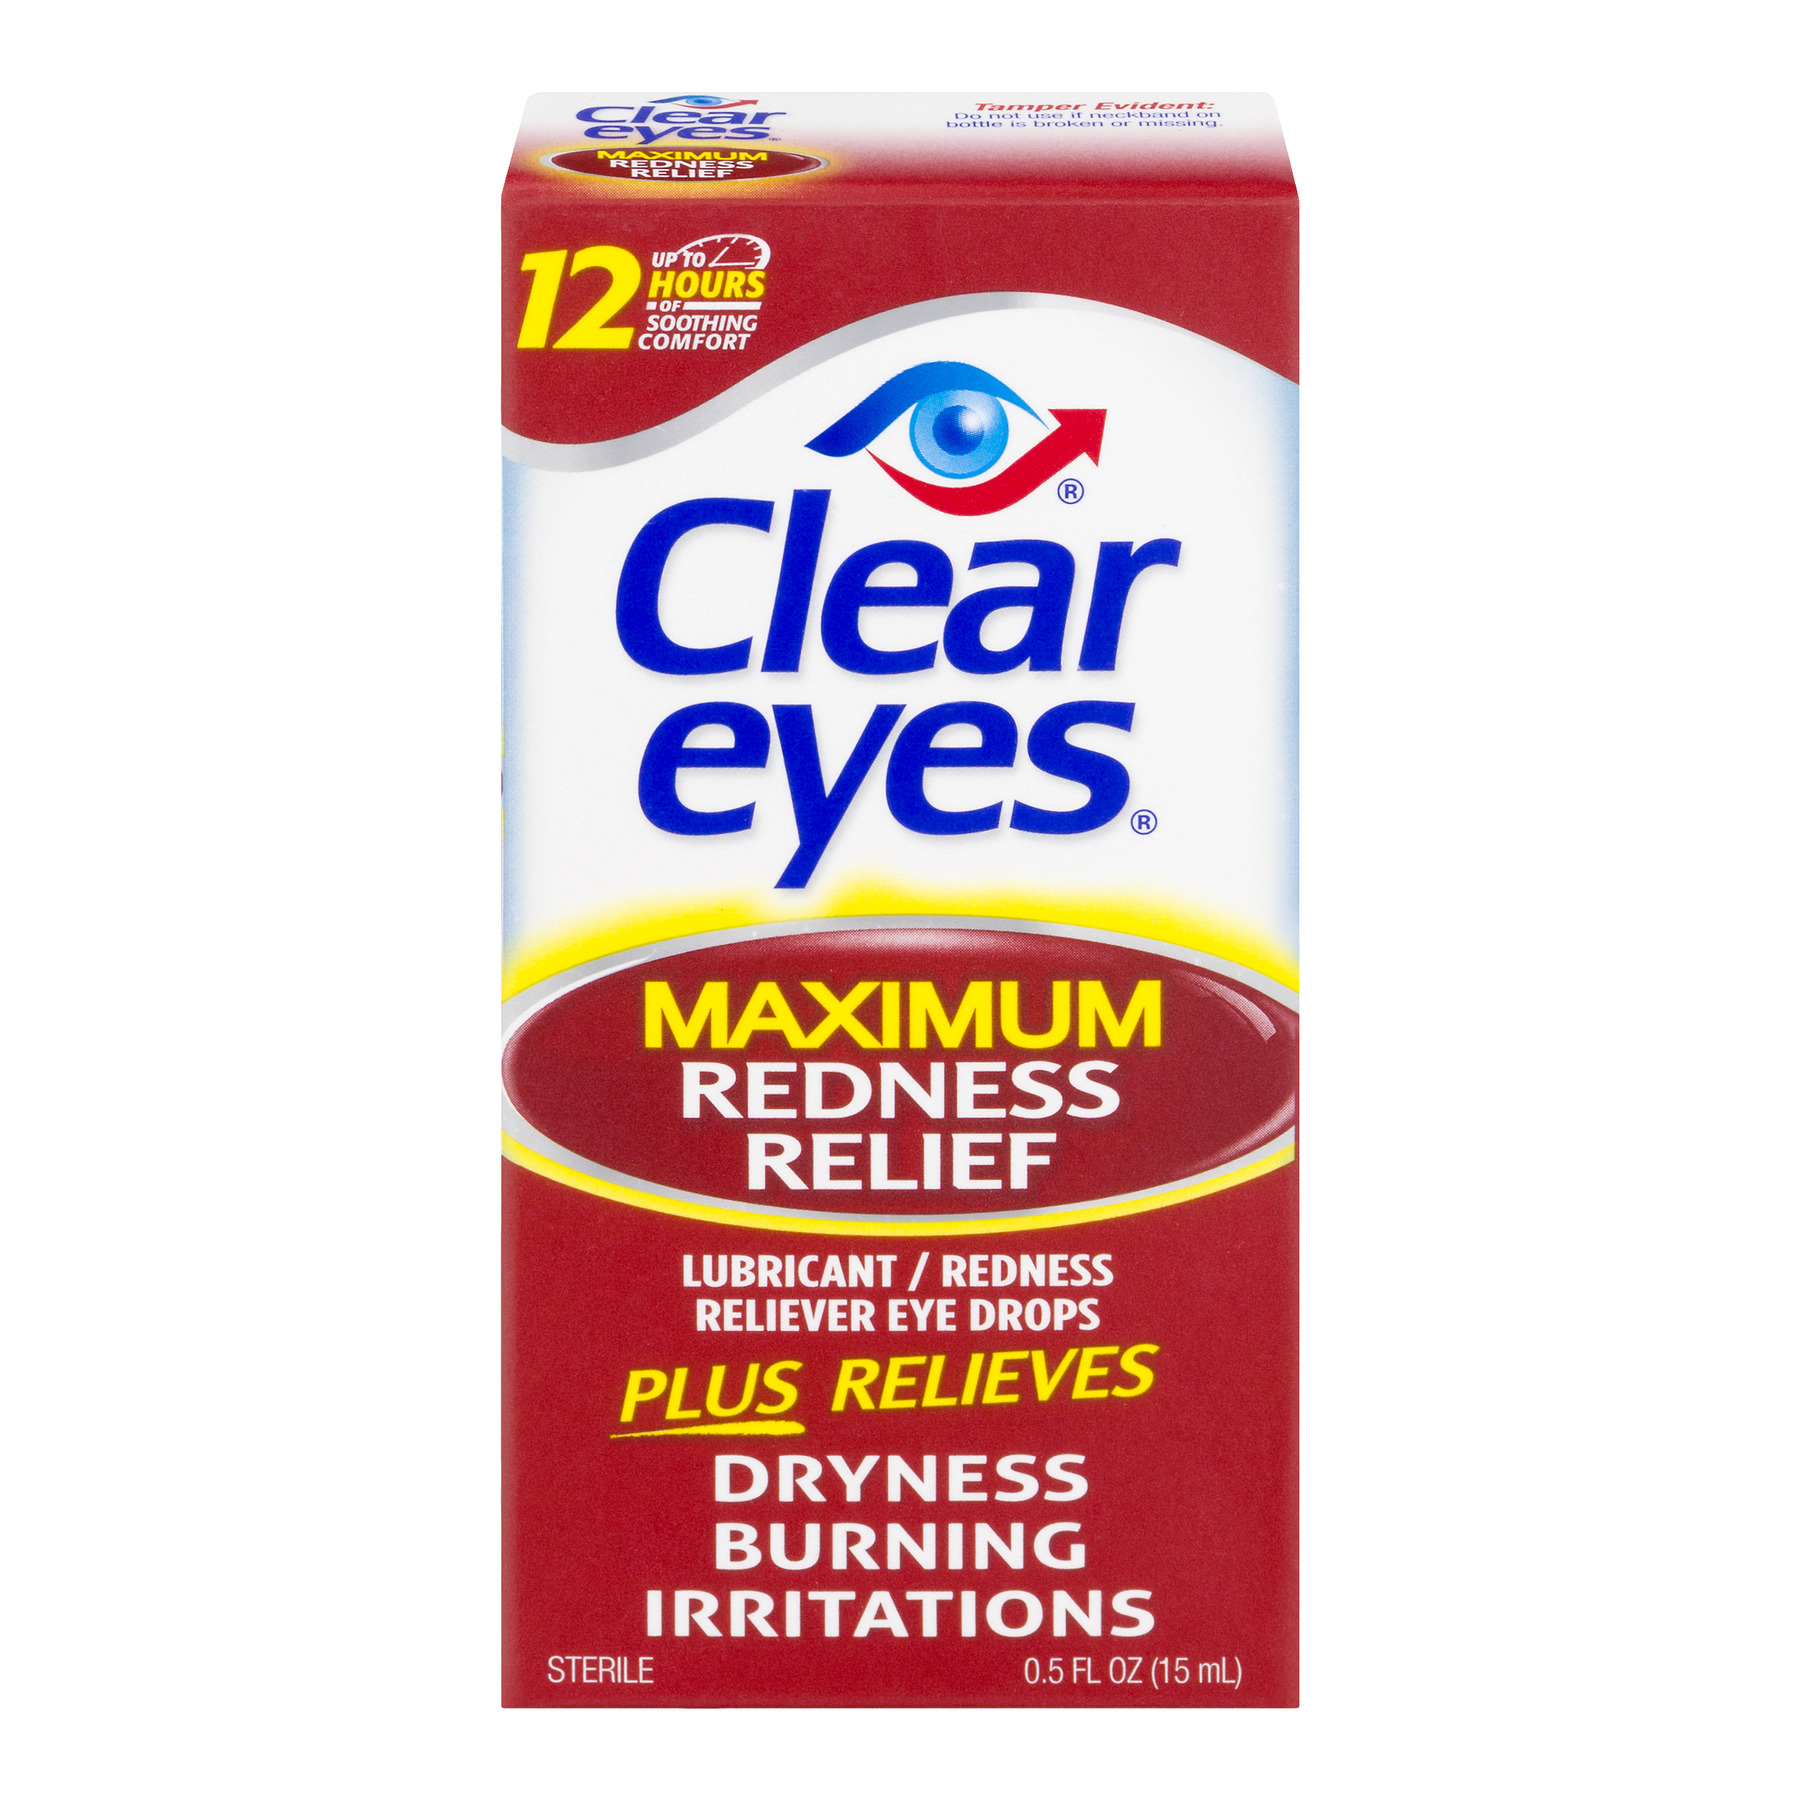 Clear Eyes Maximum Redness Relief Eye Drops, 0.5 FL OZ - Walmart.com at Walmart - Vision Center in Connersville, IN | Tuggl